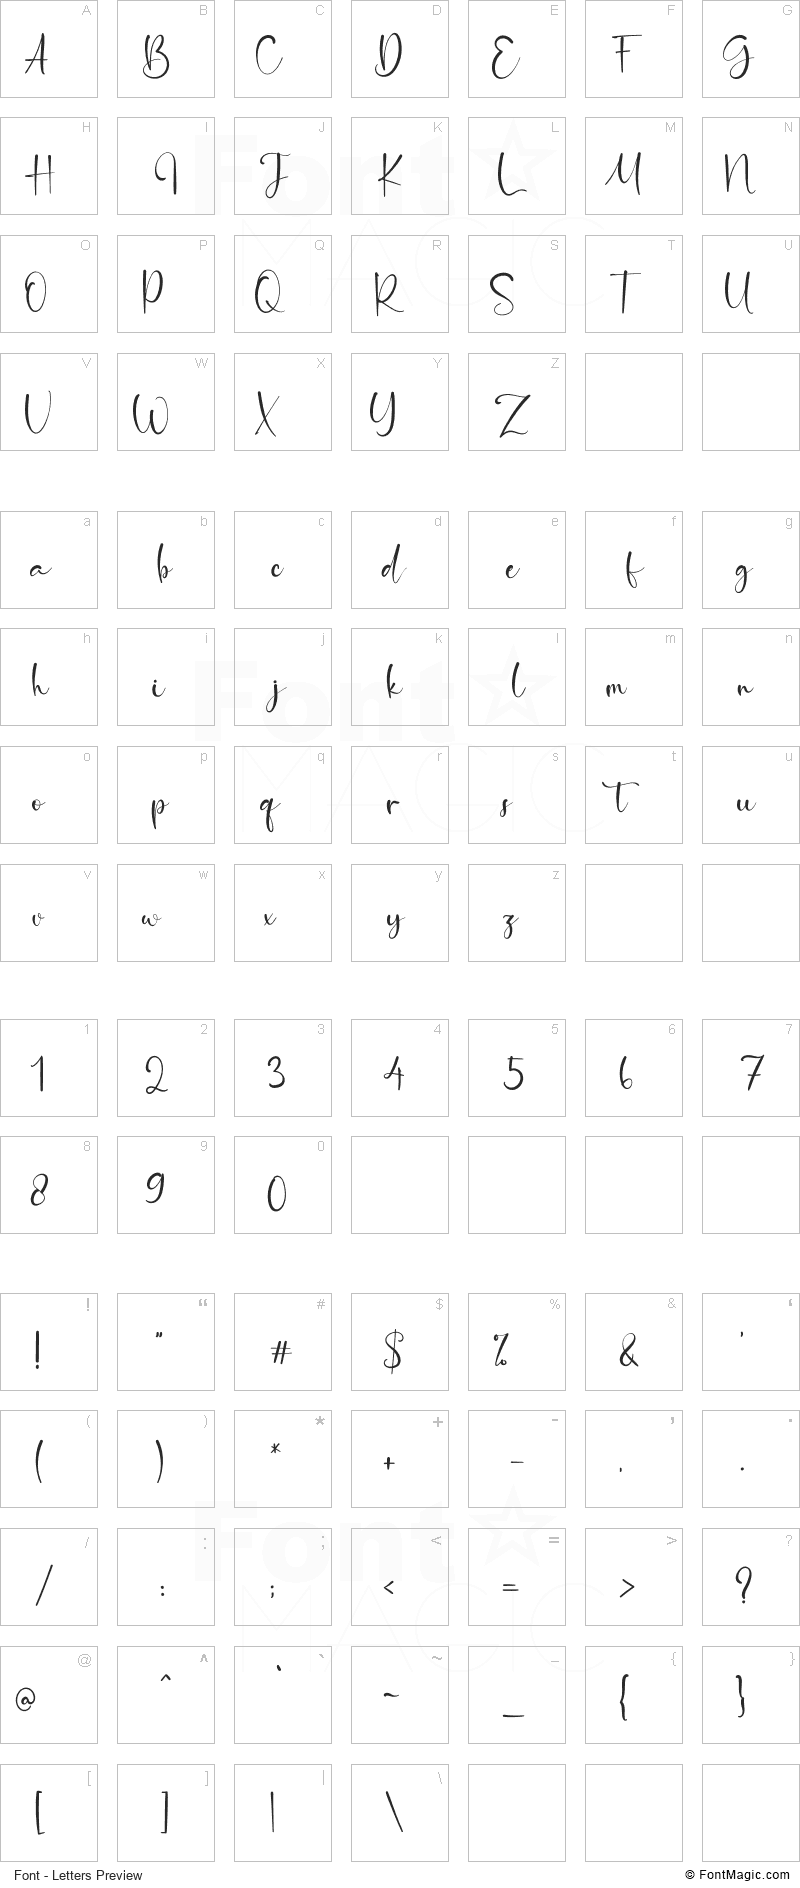 Orange Signature Font - All Latters Preview Chart